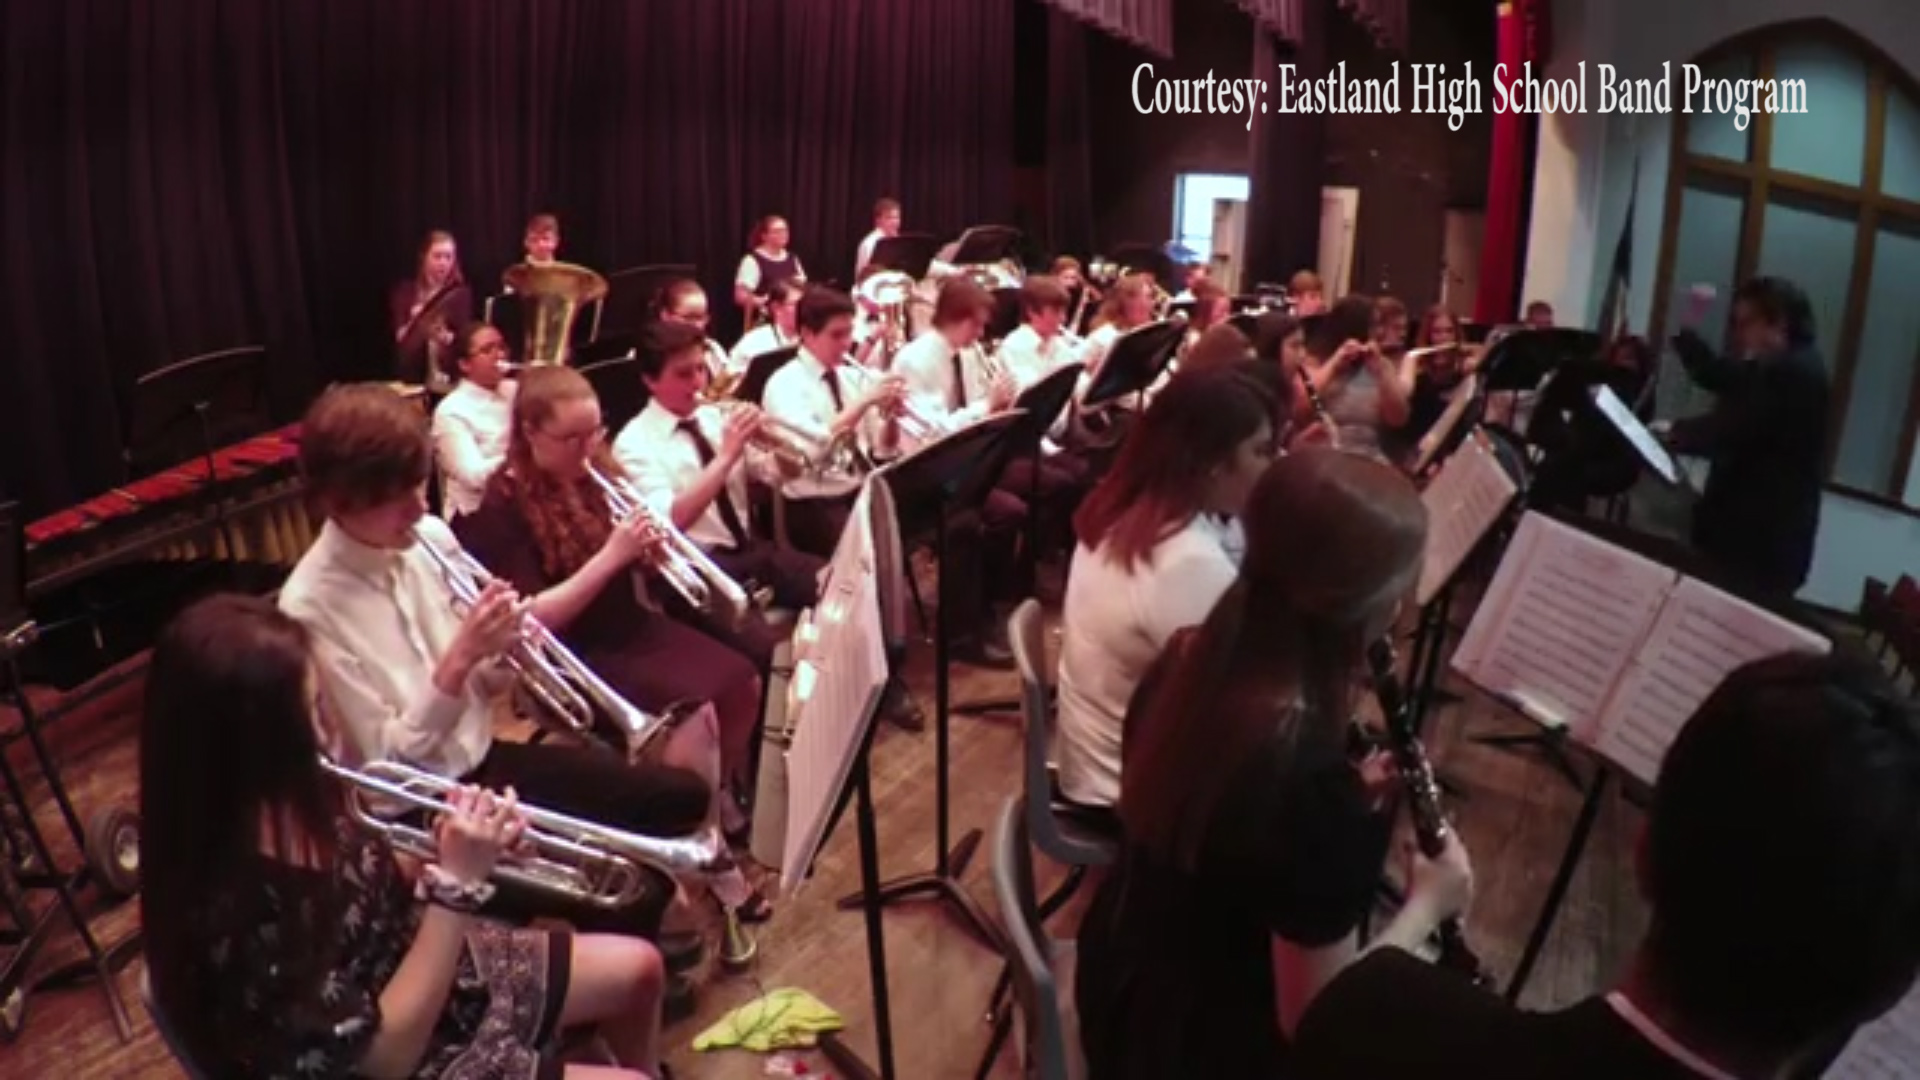 The Eastland High School Band